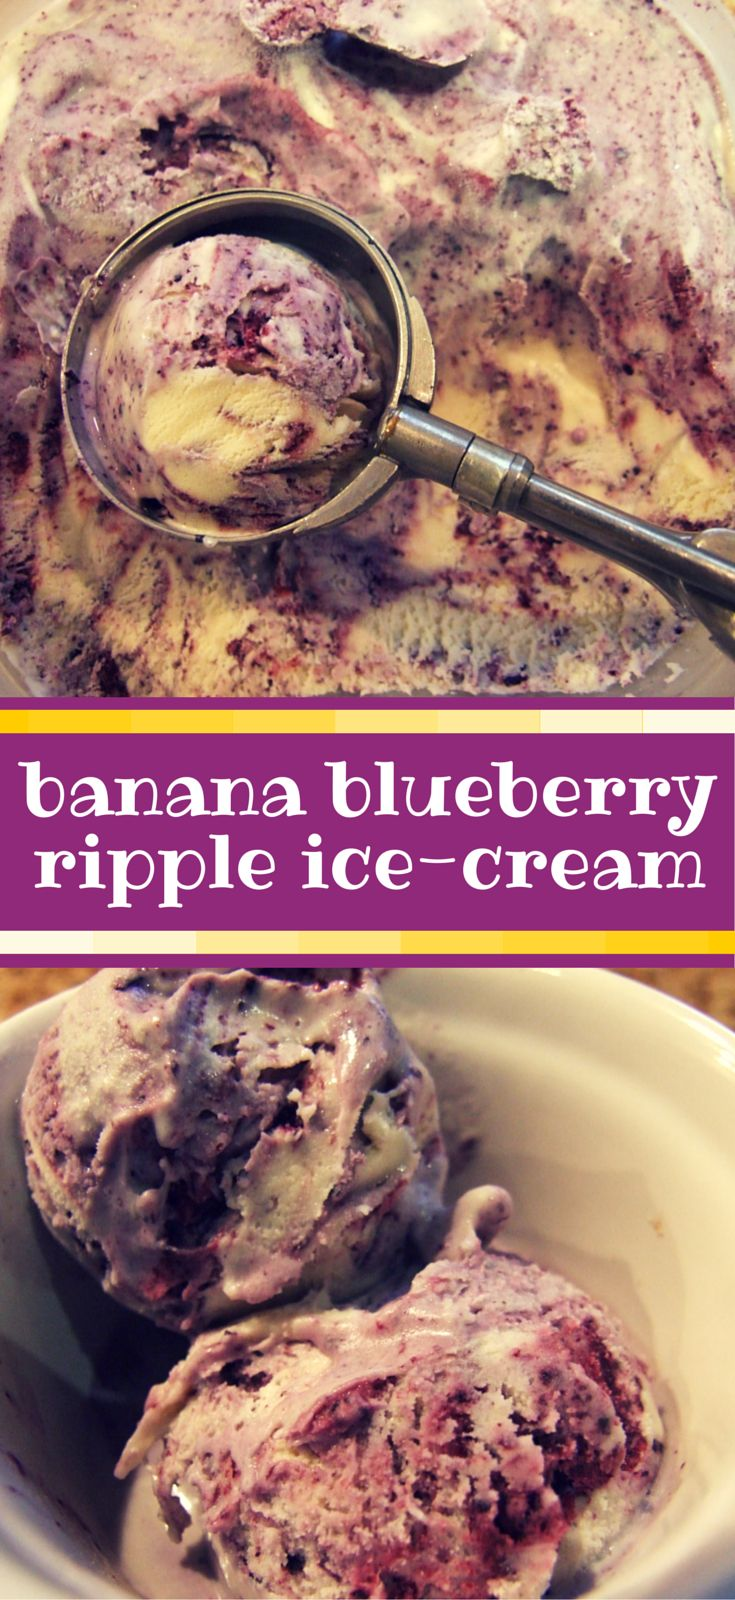 Banana blueberry ripple ice-cream. Smooth and creamy, this gorgeous banana ice-cream is enlivened with a swirl of blueberry puree. Easy to make and utterly delicious! Treat yourself!